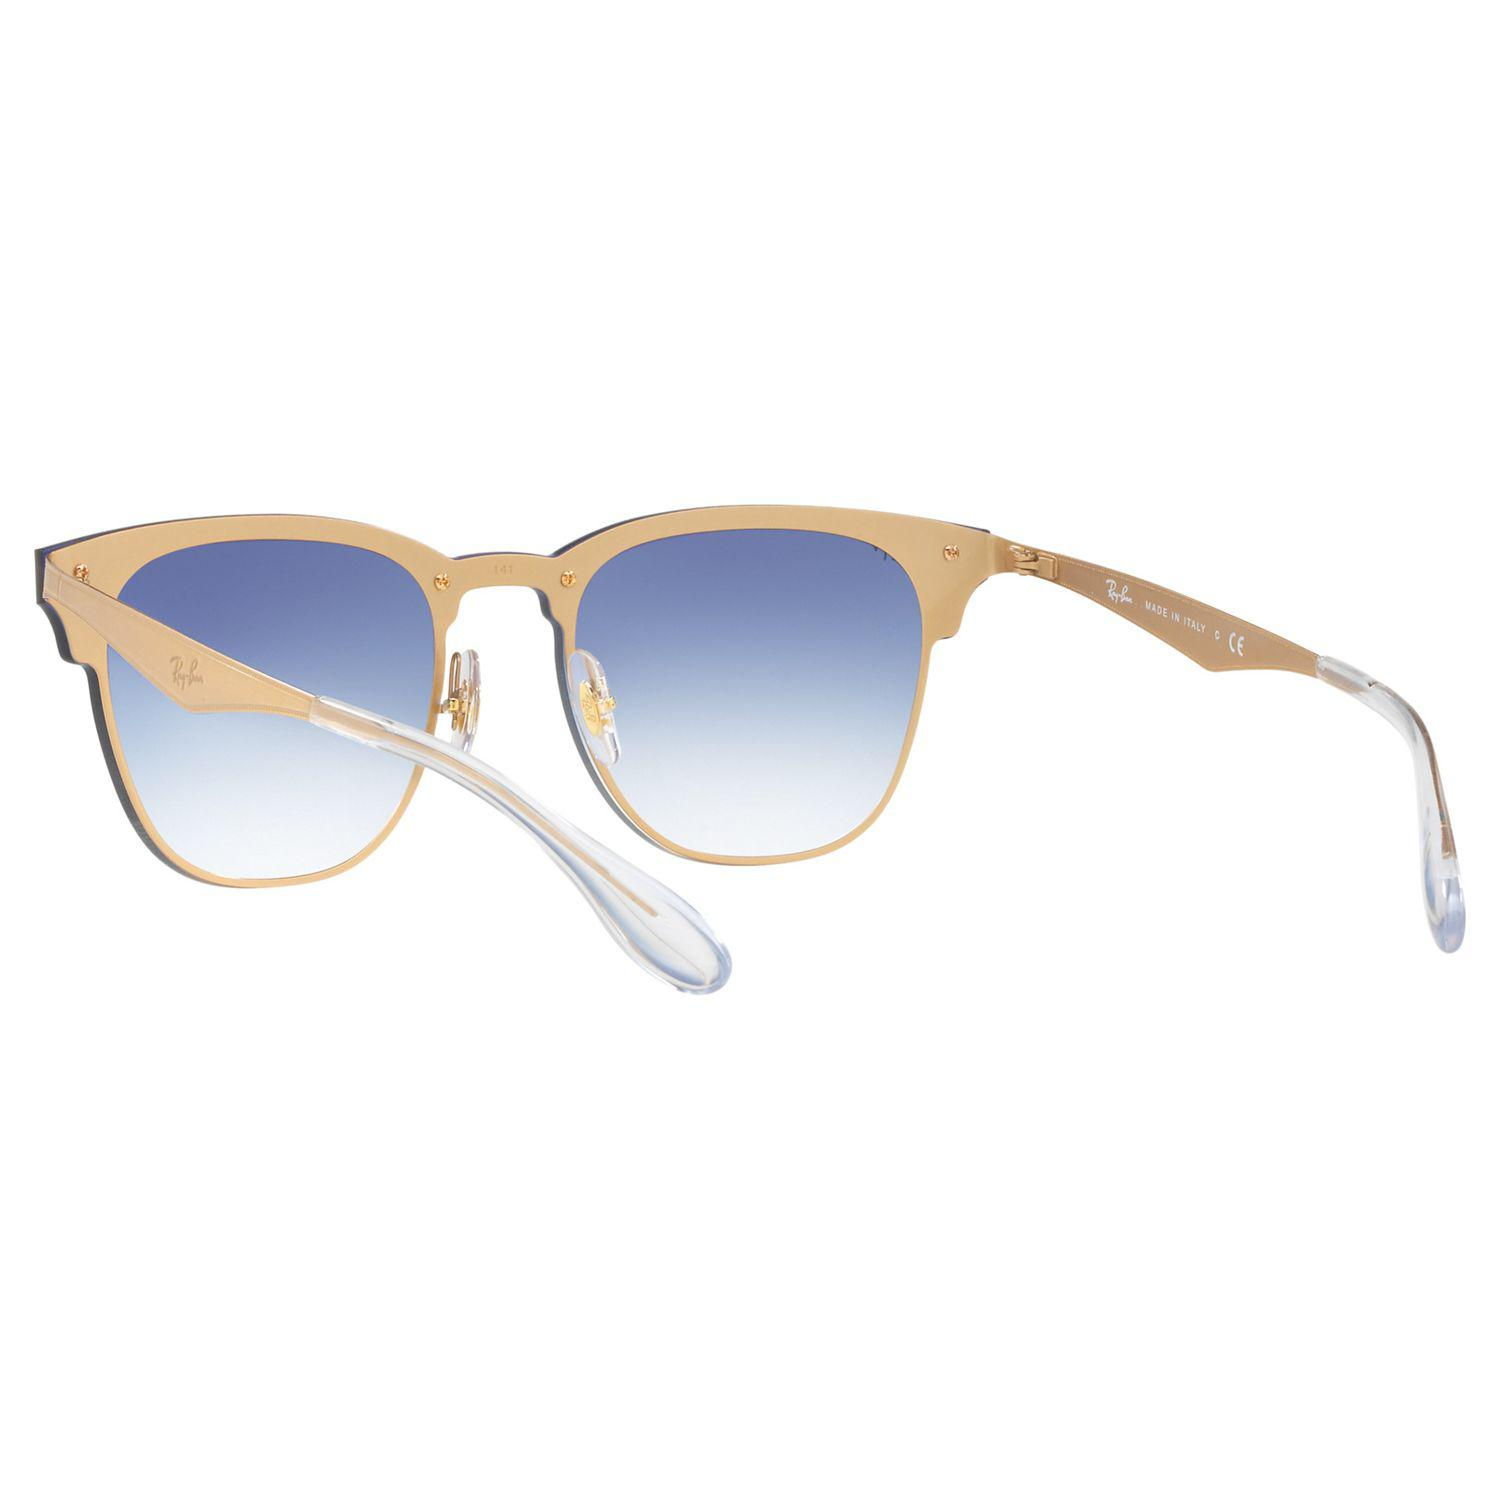 Ray-Ban Synthetic Rb3576n Blaze Clubmaster Square Sunglasses in Blue